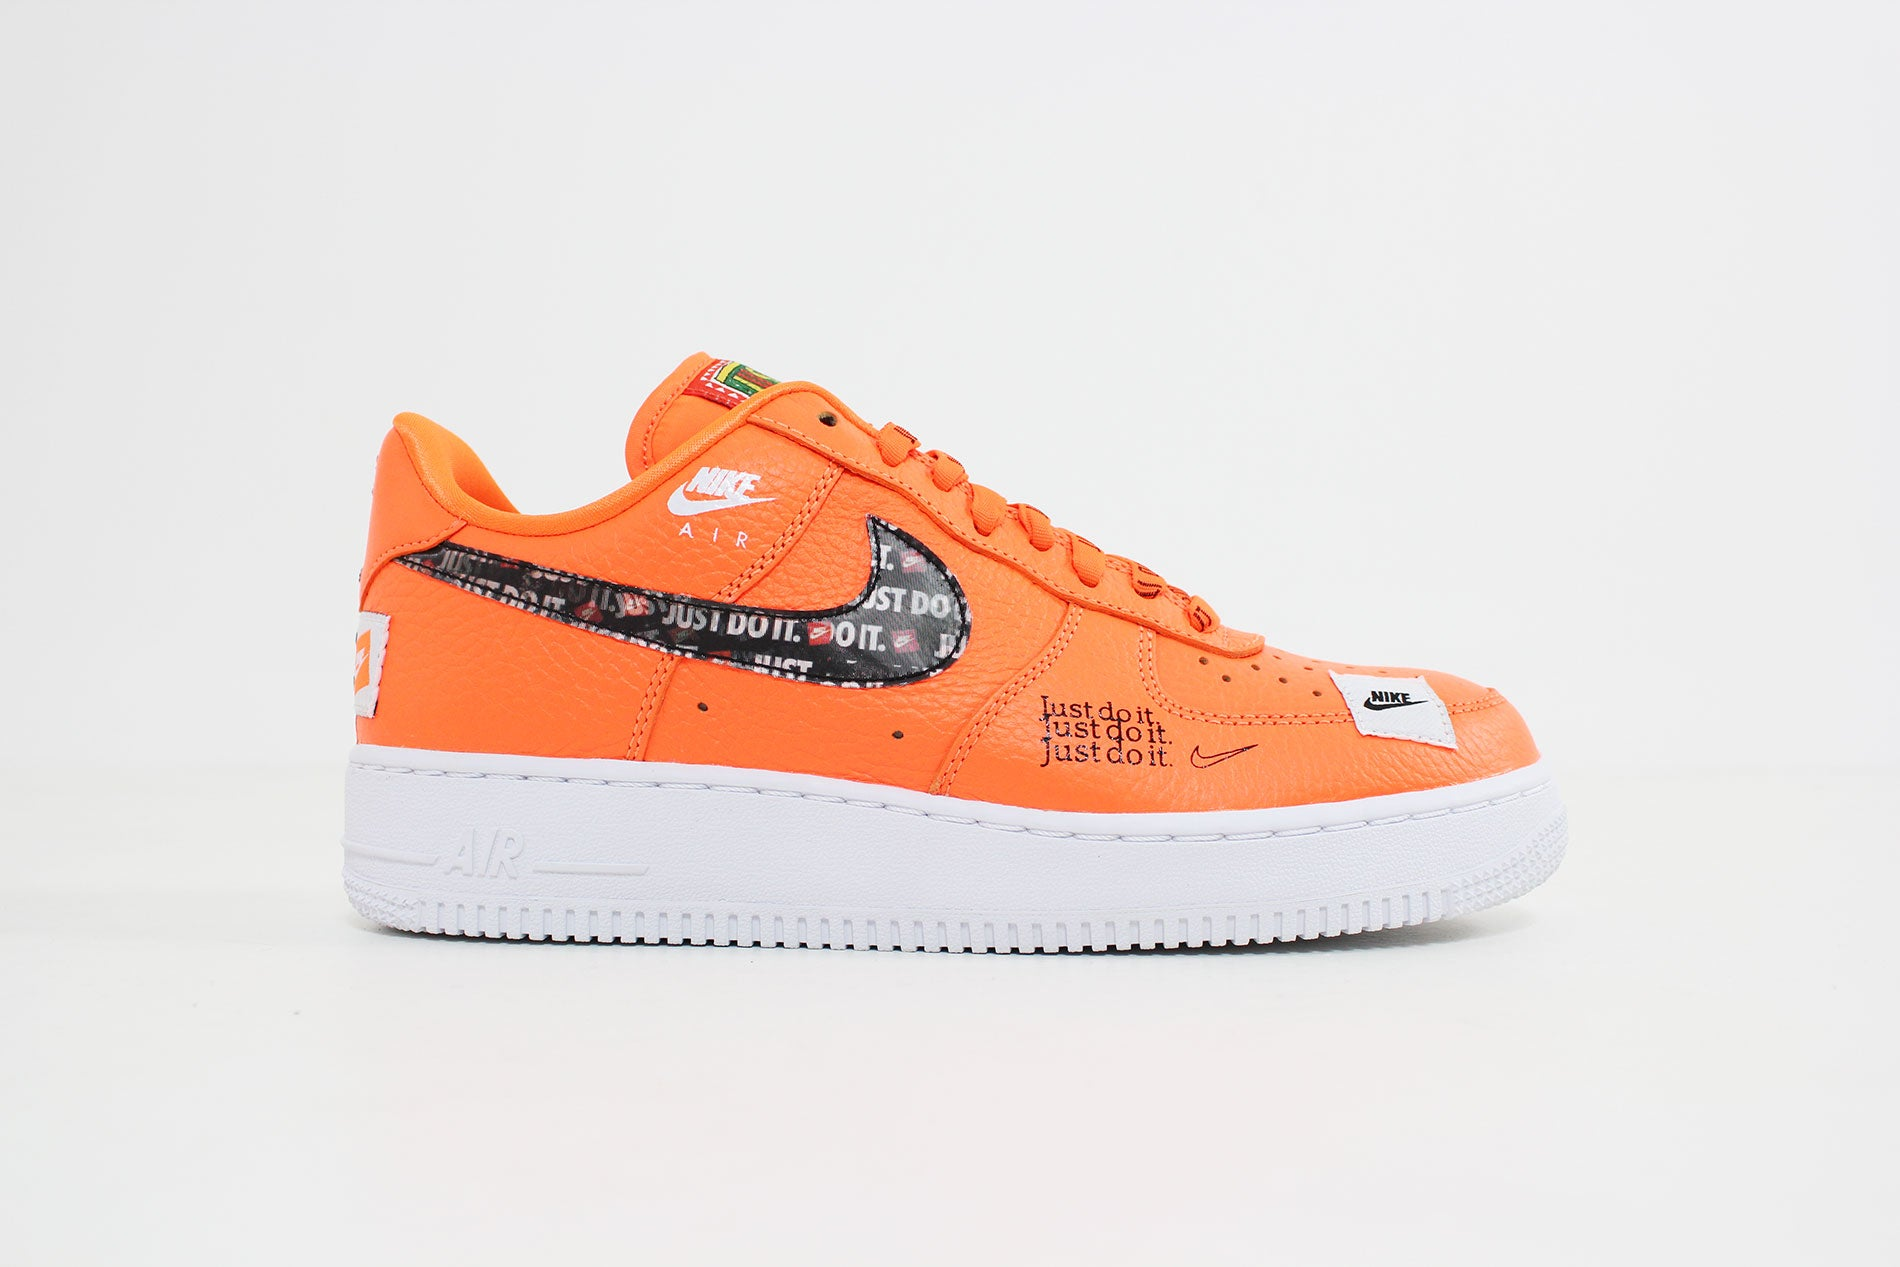 Nike - Air Force 1 Premium JDI (Total Orange/ Total Orange-Black White) AR7719-800